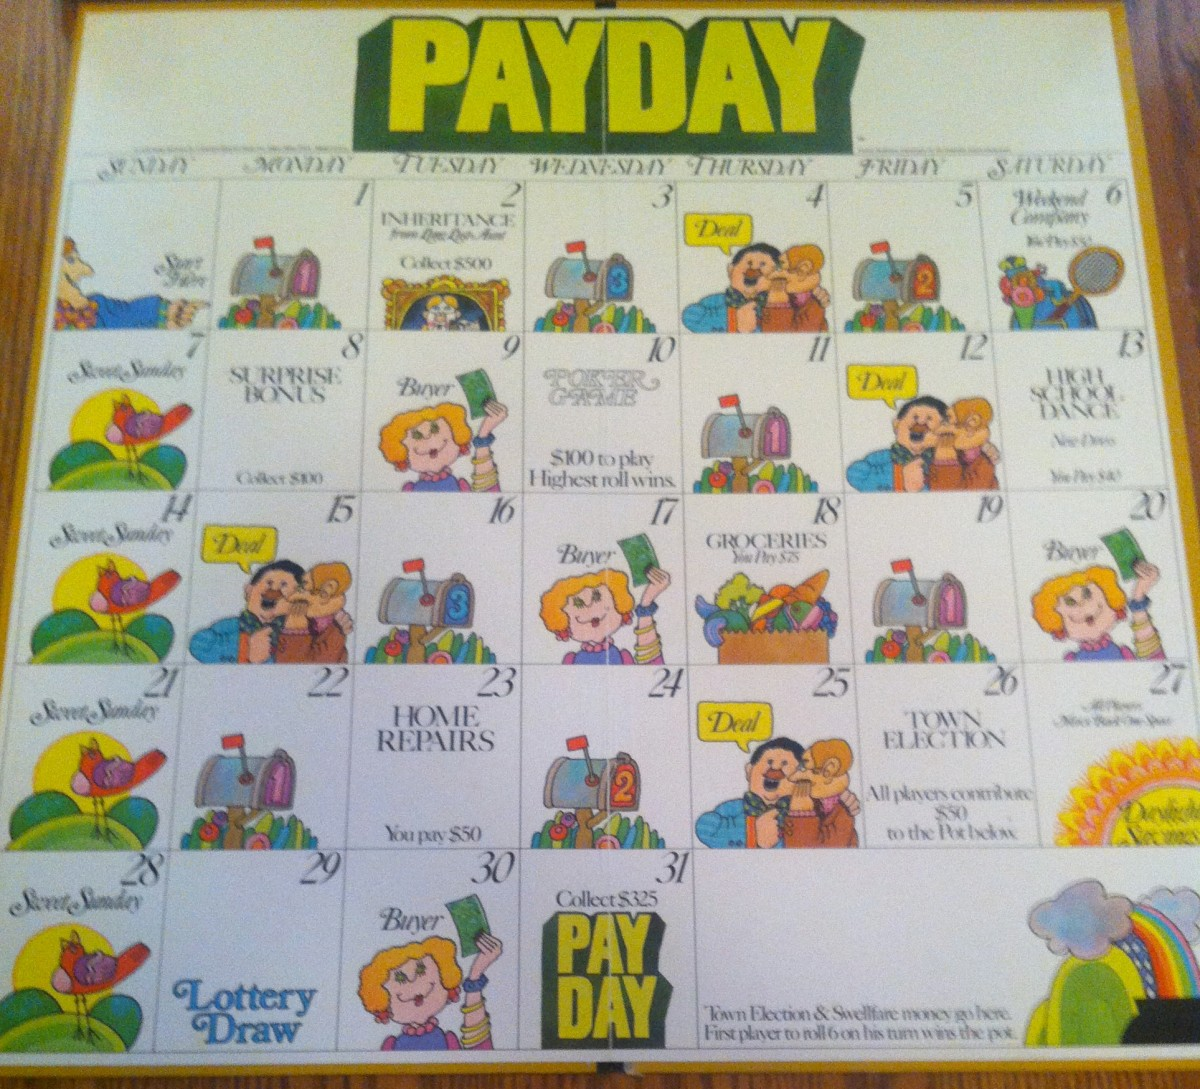 The Payday game board.